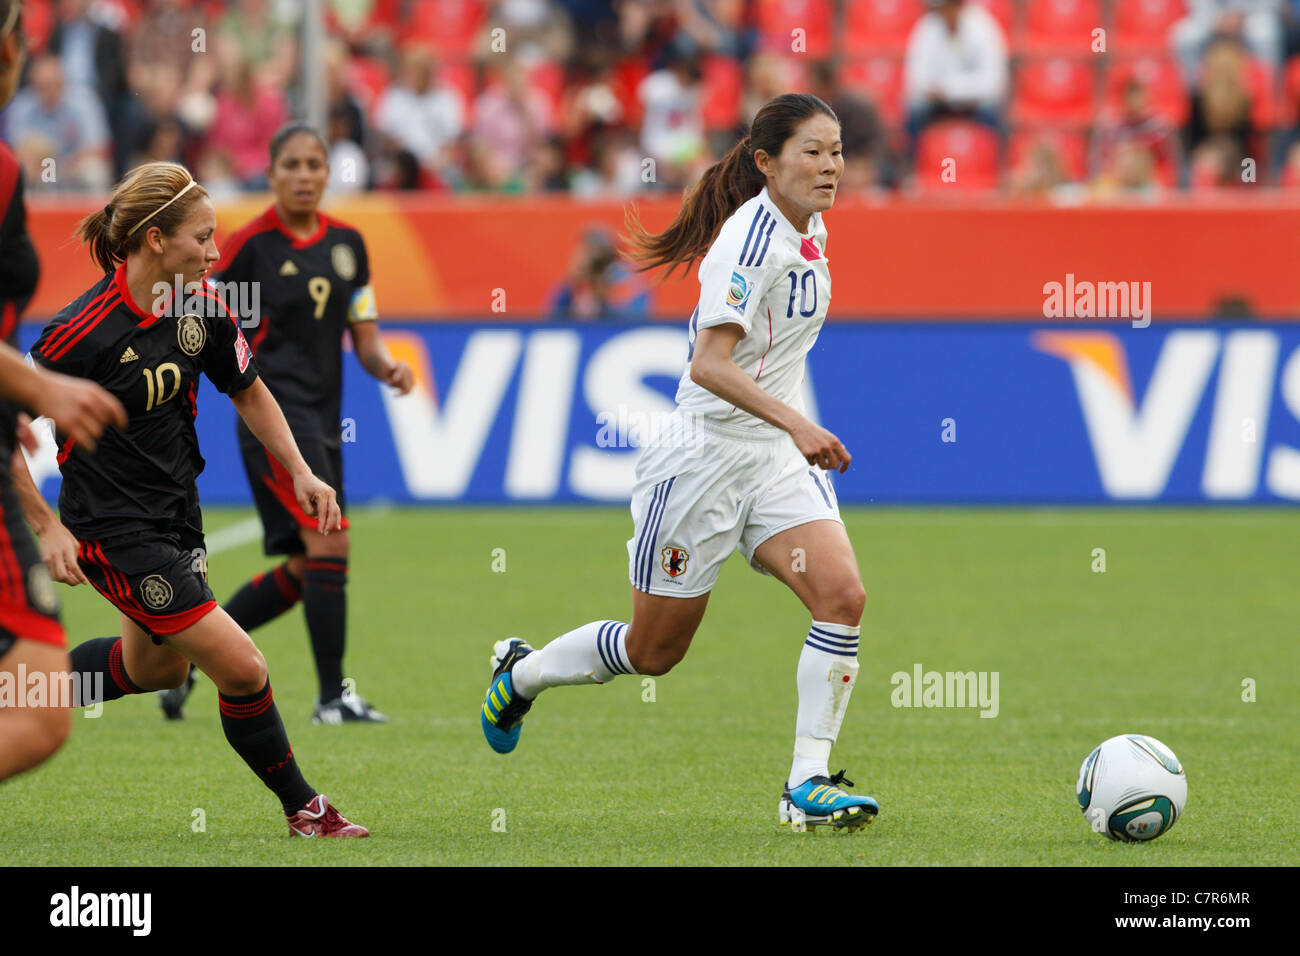 Japan team captain Homare Sawa attacks against Mexico during a FIFA Women's World Cup Group B match July 1, - Stock Image